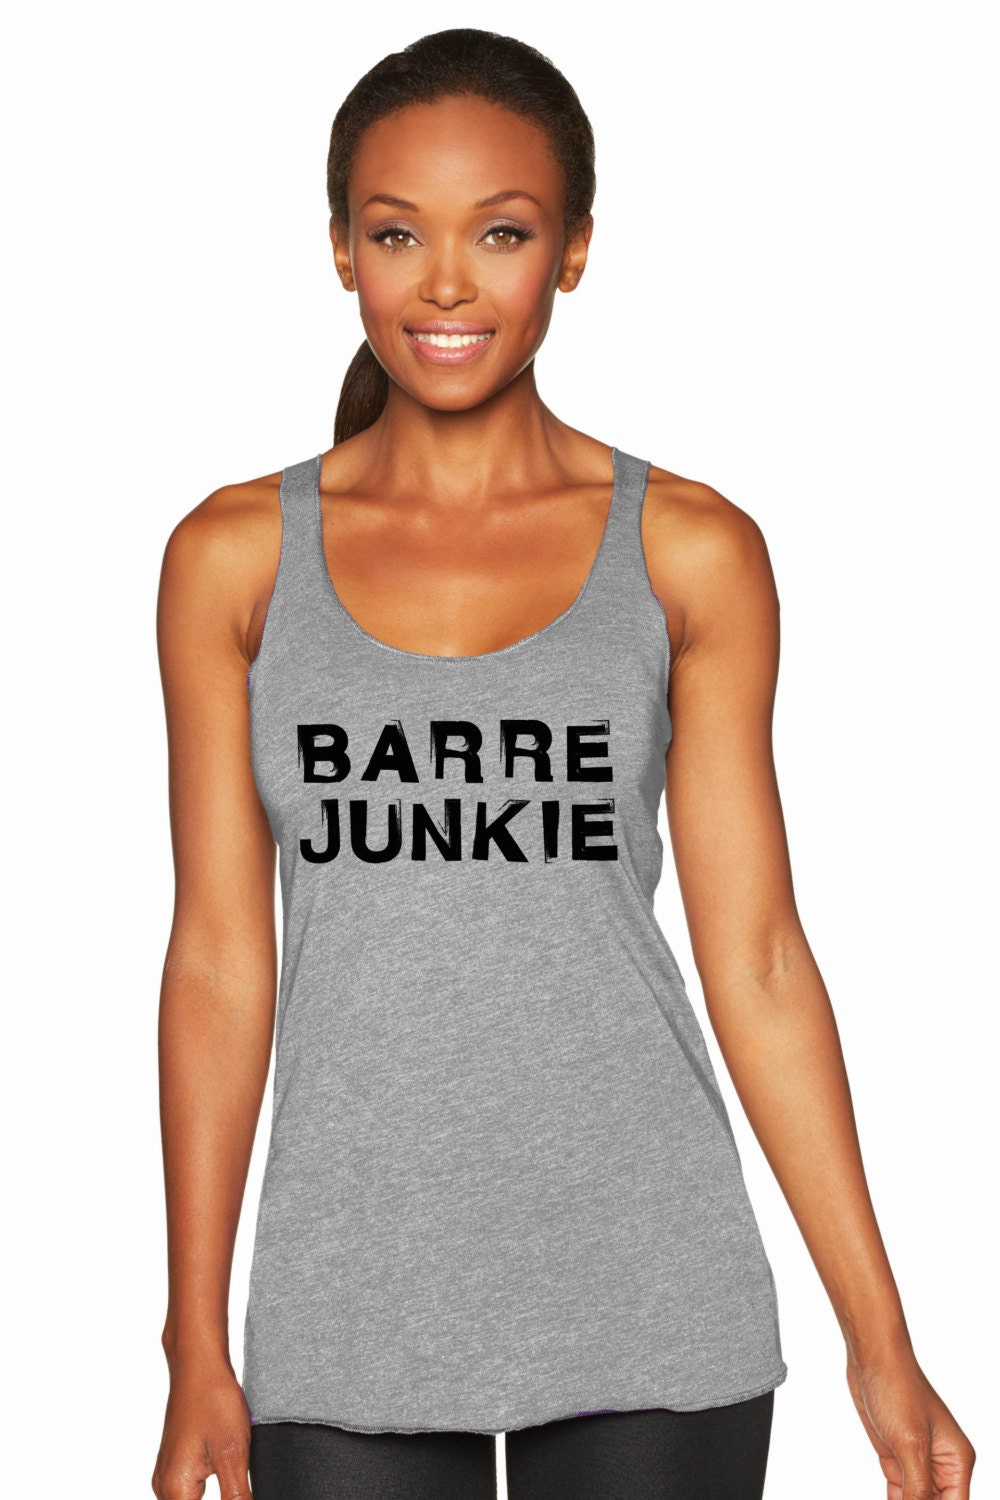 """Please visit the """"Pure Barre"""" category for even more Pure Barre posts! (from January – wearing SoLow cropped leggings, SoLow cami, Everlane ryan tank, Blake Brody ballet shoes) You're probably under the impression that everyone wears Lululemon and looks the same at Pure Barre."""